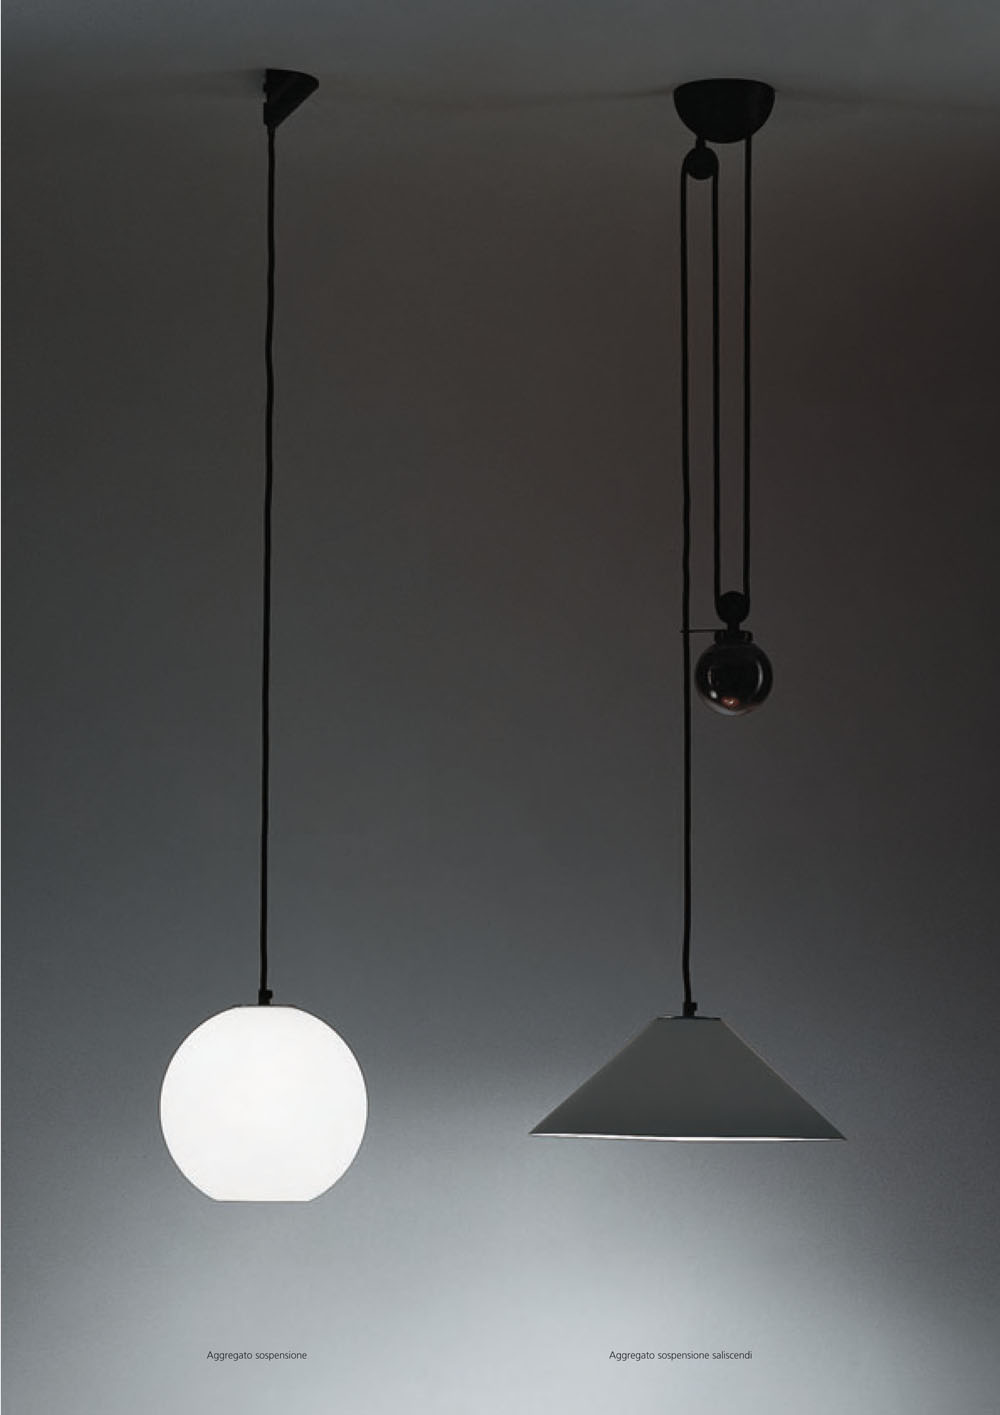 Aggregato Sospensione (Structure) for Pendant Lamp simple E27 20w without Accessory Diffuser